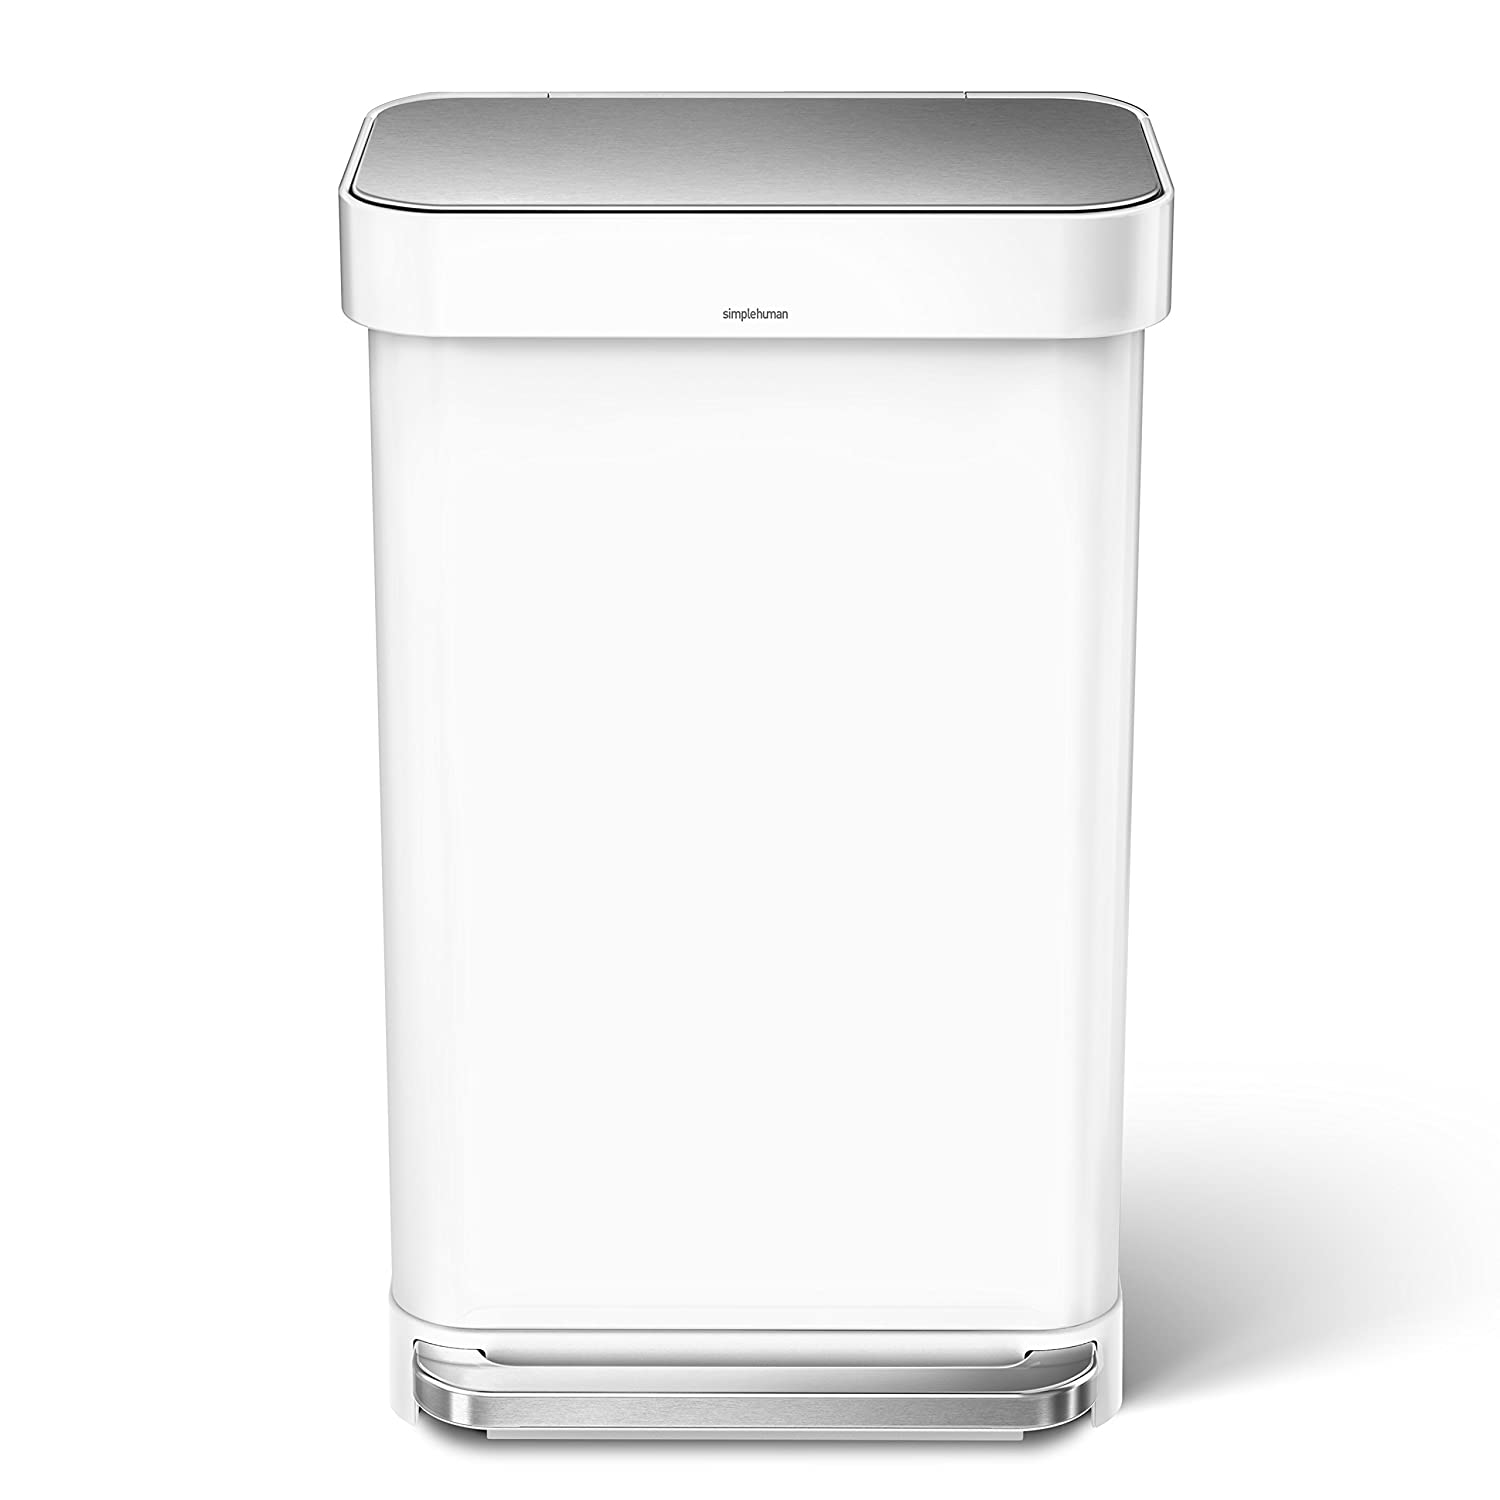 simplehuman Rectangular Step Trash Can with Liner Pocket, White Stainless Steel, 45 L / 11.9 Gal